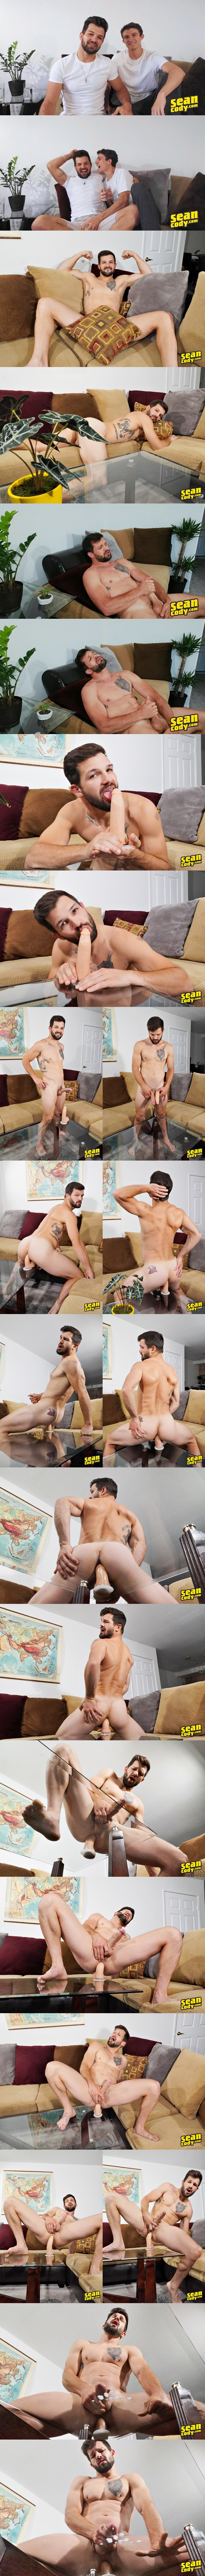 Popular model Brysen introduces his boyfriend Nolan before Bryen fingers and fucks himself with his own molded dildo until he blows two creamy loads at Seancody 01